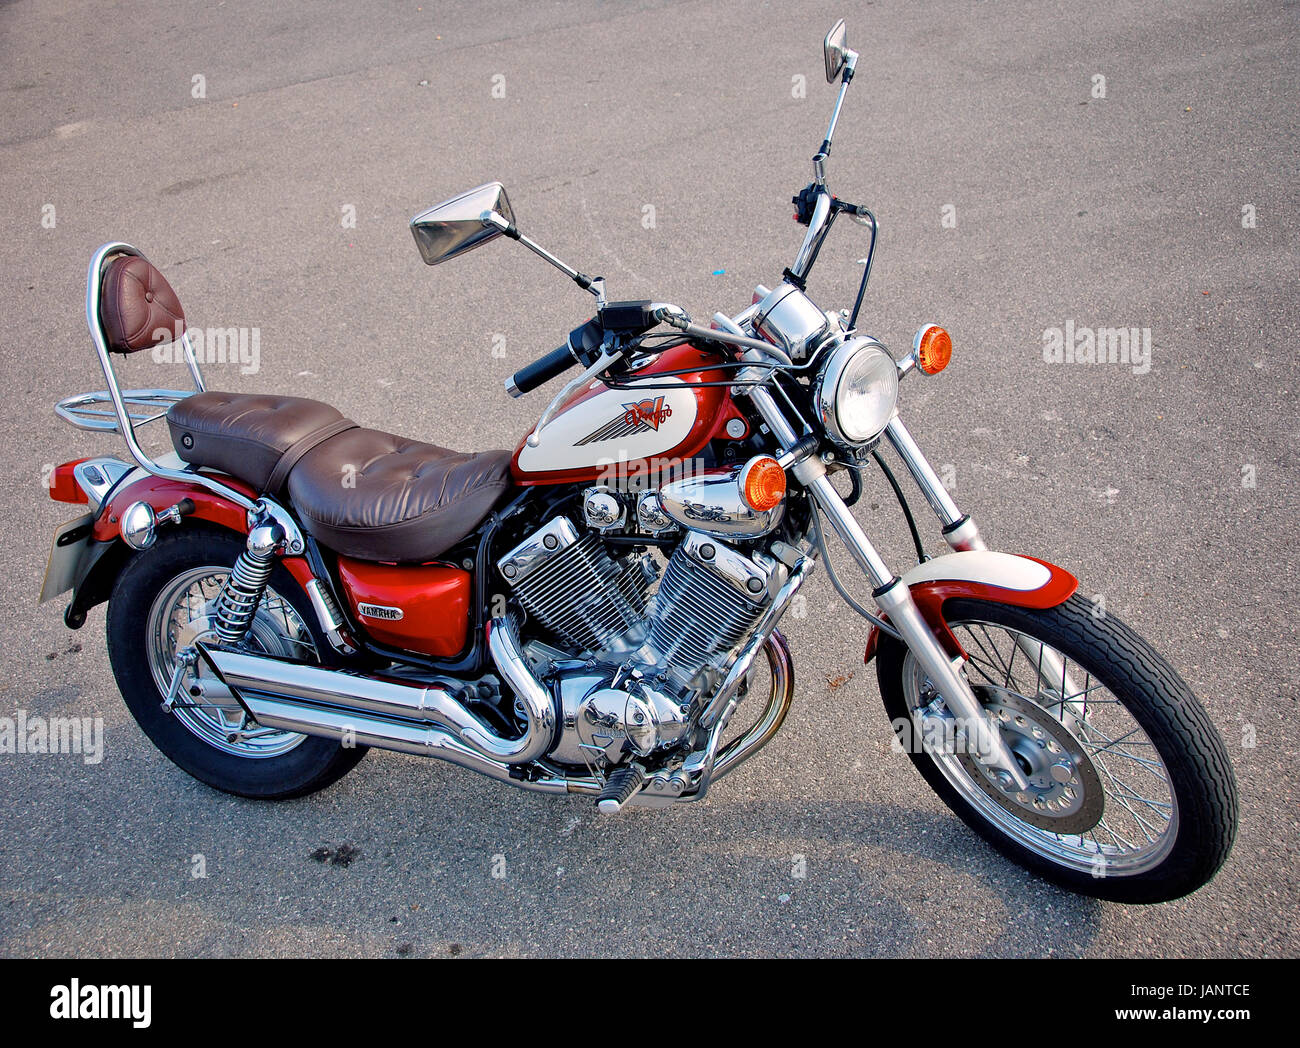 100 yamaha virago 1100 motorcycles for yamaha virago 1100 for sale yamaha motorcycles. Black Bedroom Furniture Sets. Home Design Ideas